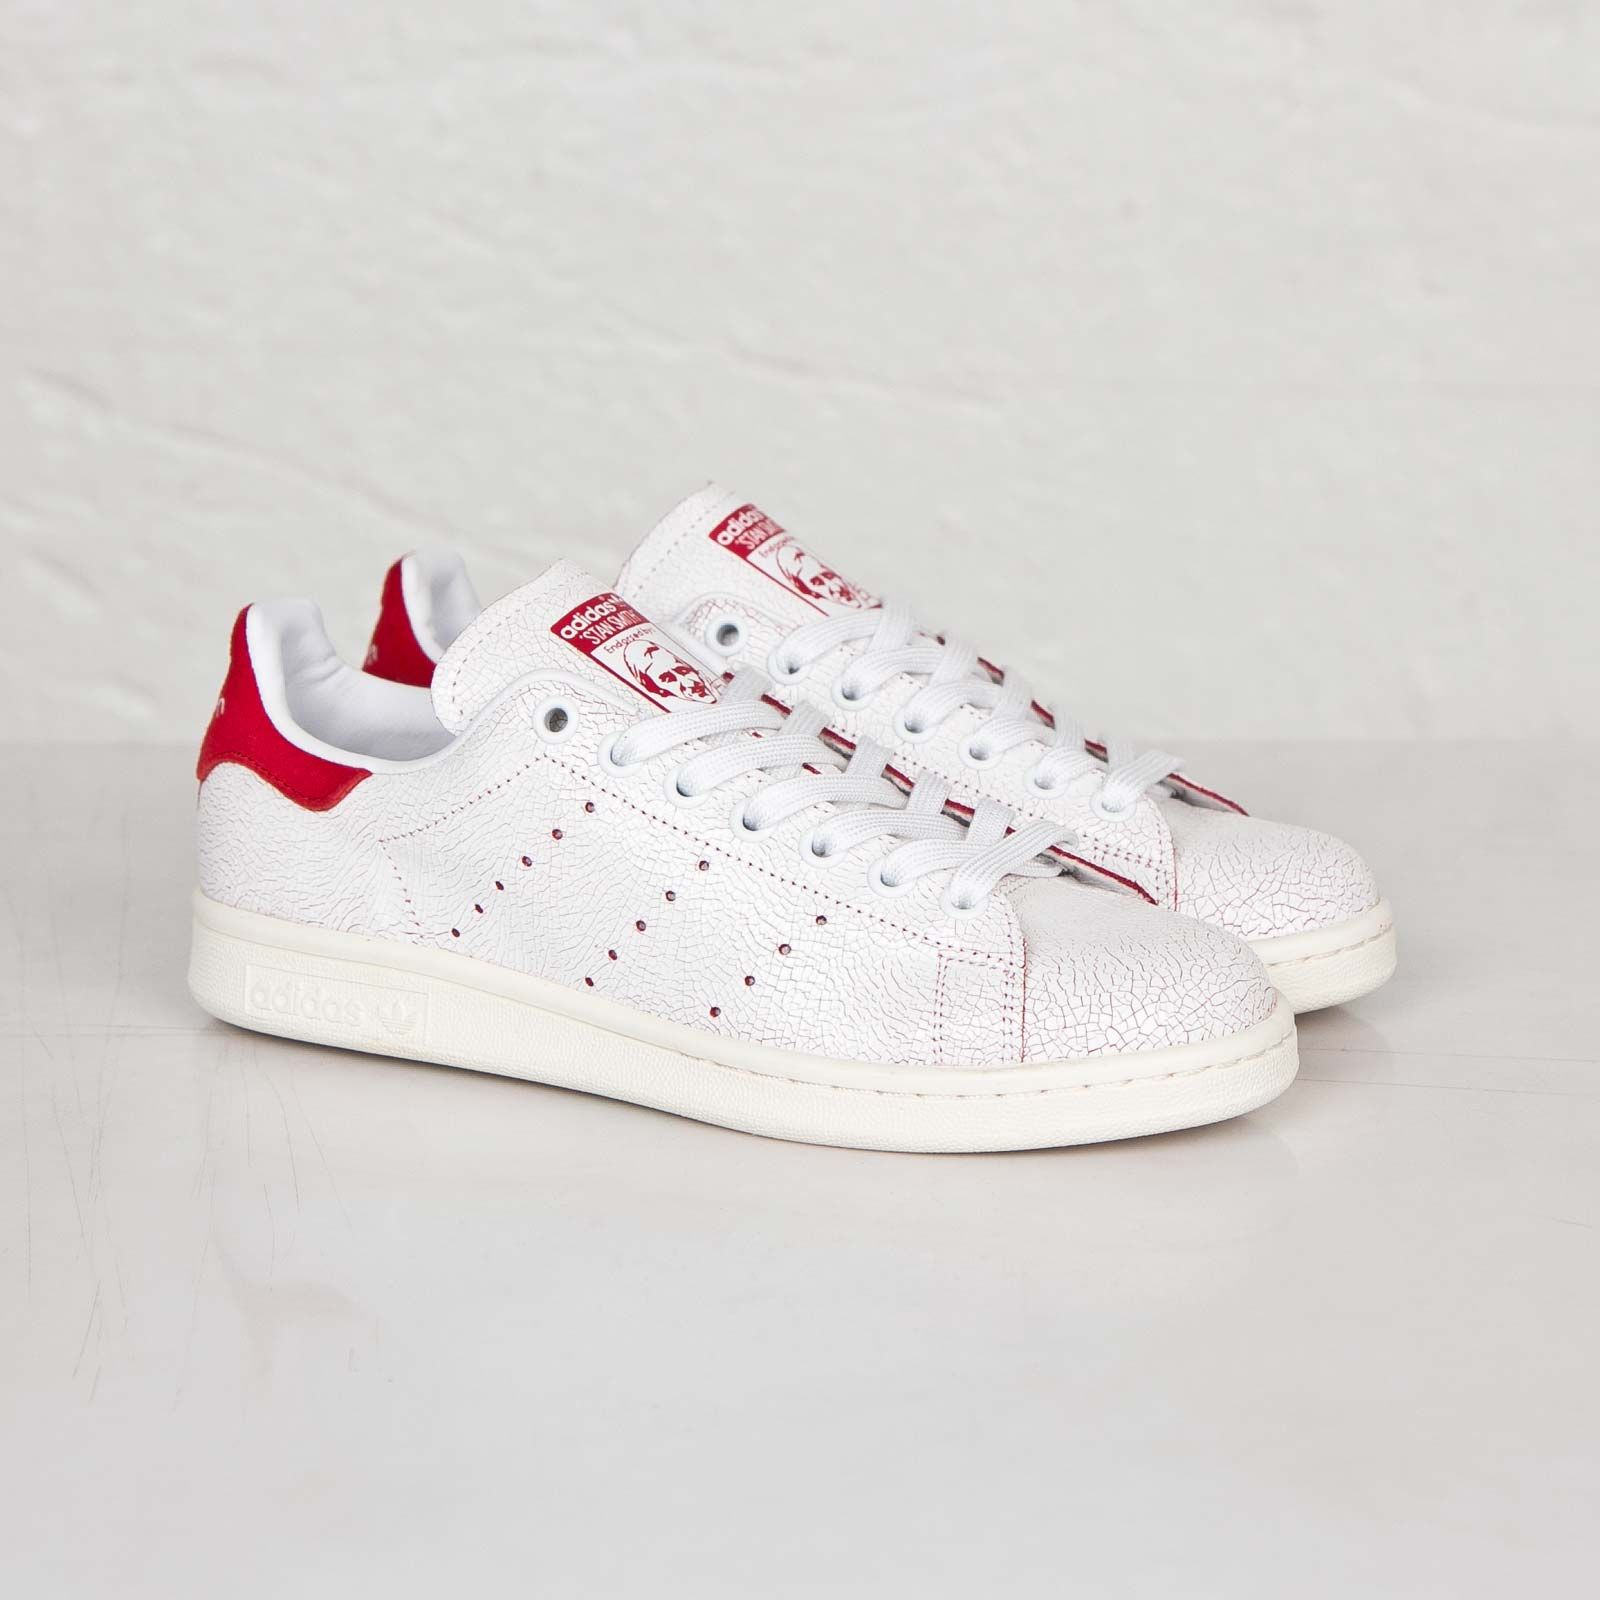 adidas sam smith all white stan smith adidas stan smith sale. Black Bedroom Furniture Sets. Home Design Ideas